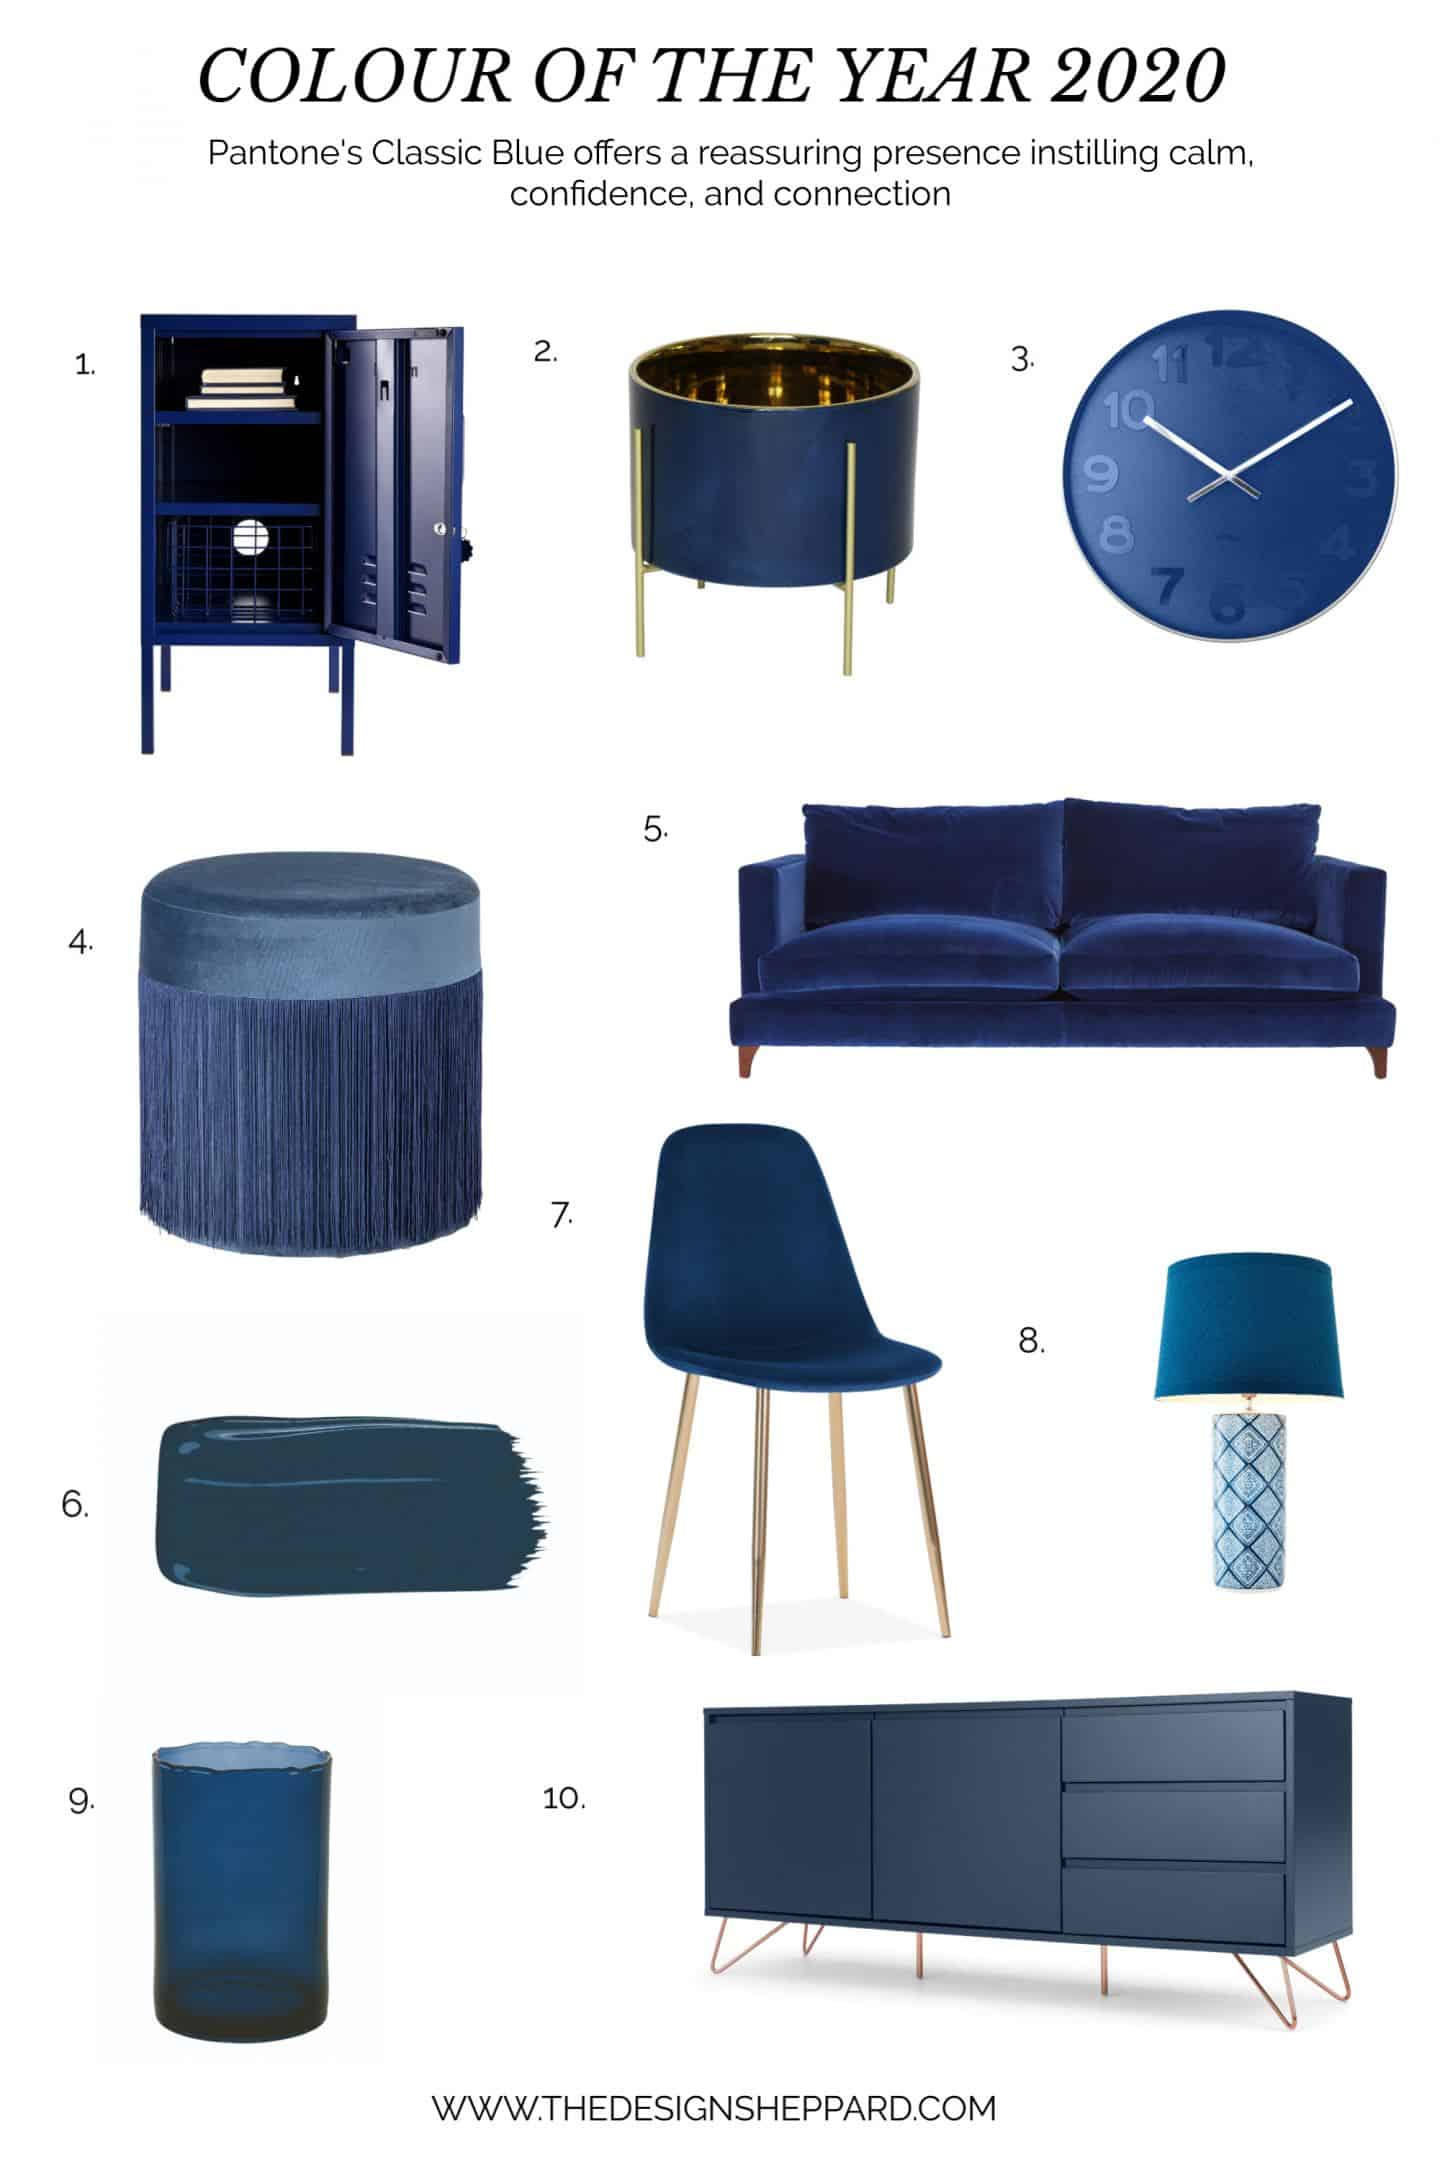 Homeware products in Pantone Colour of the Year 2020 Classic Blue